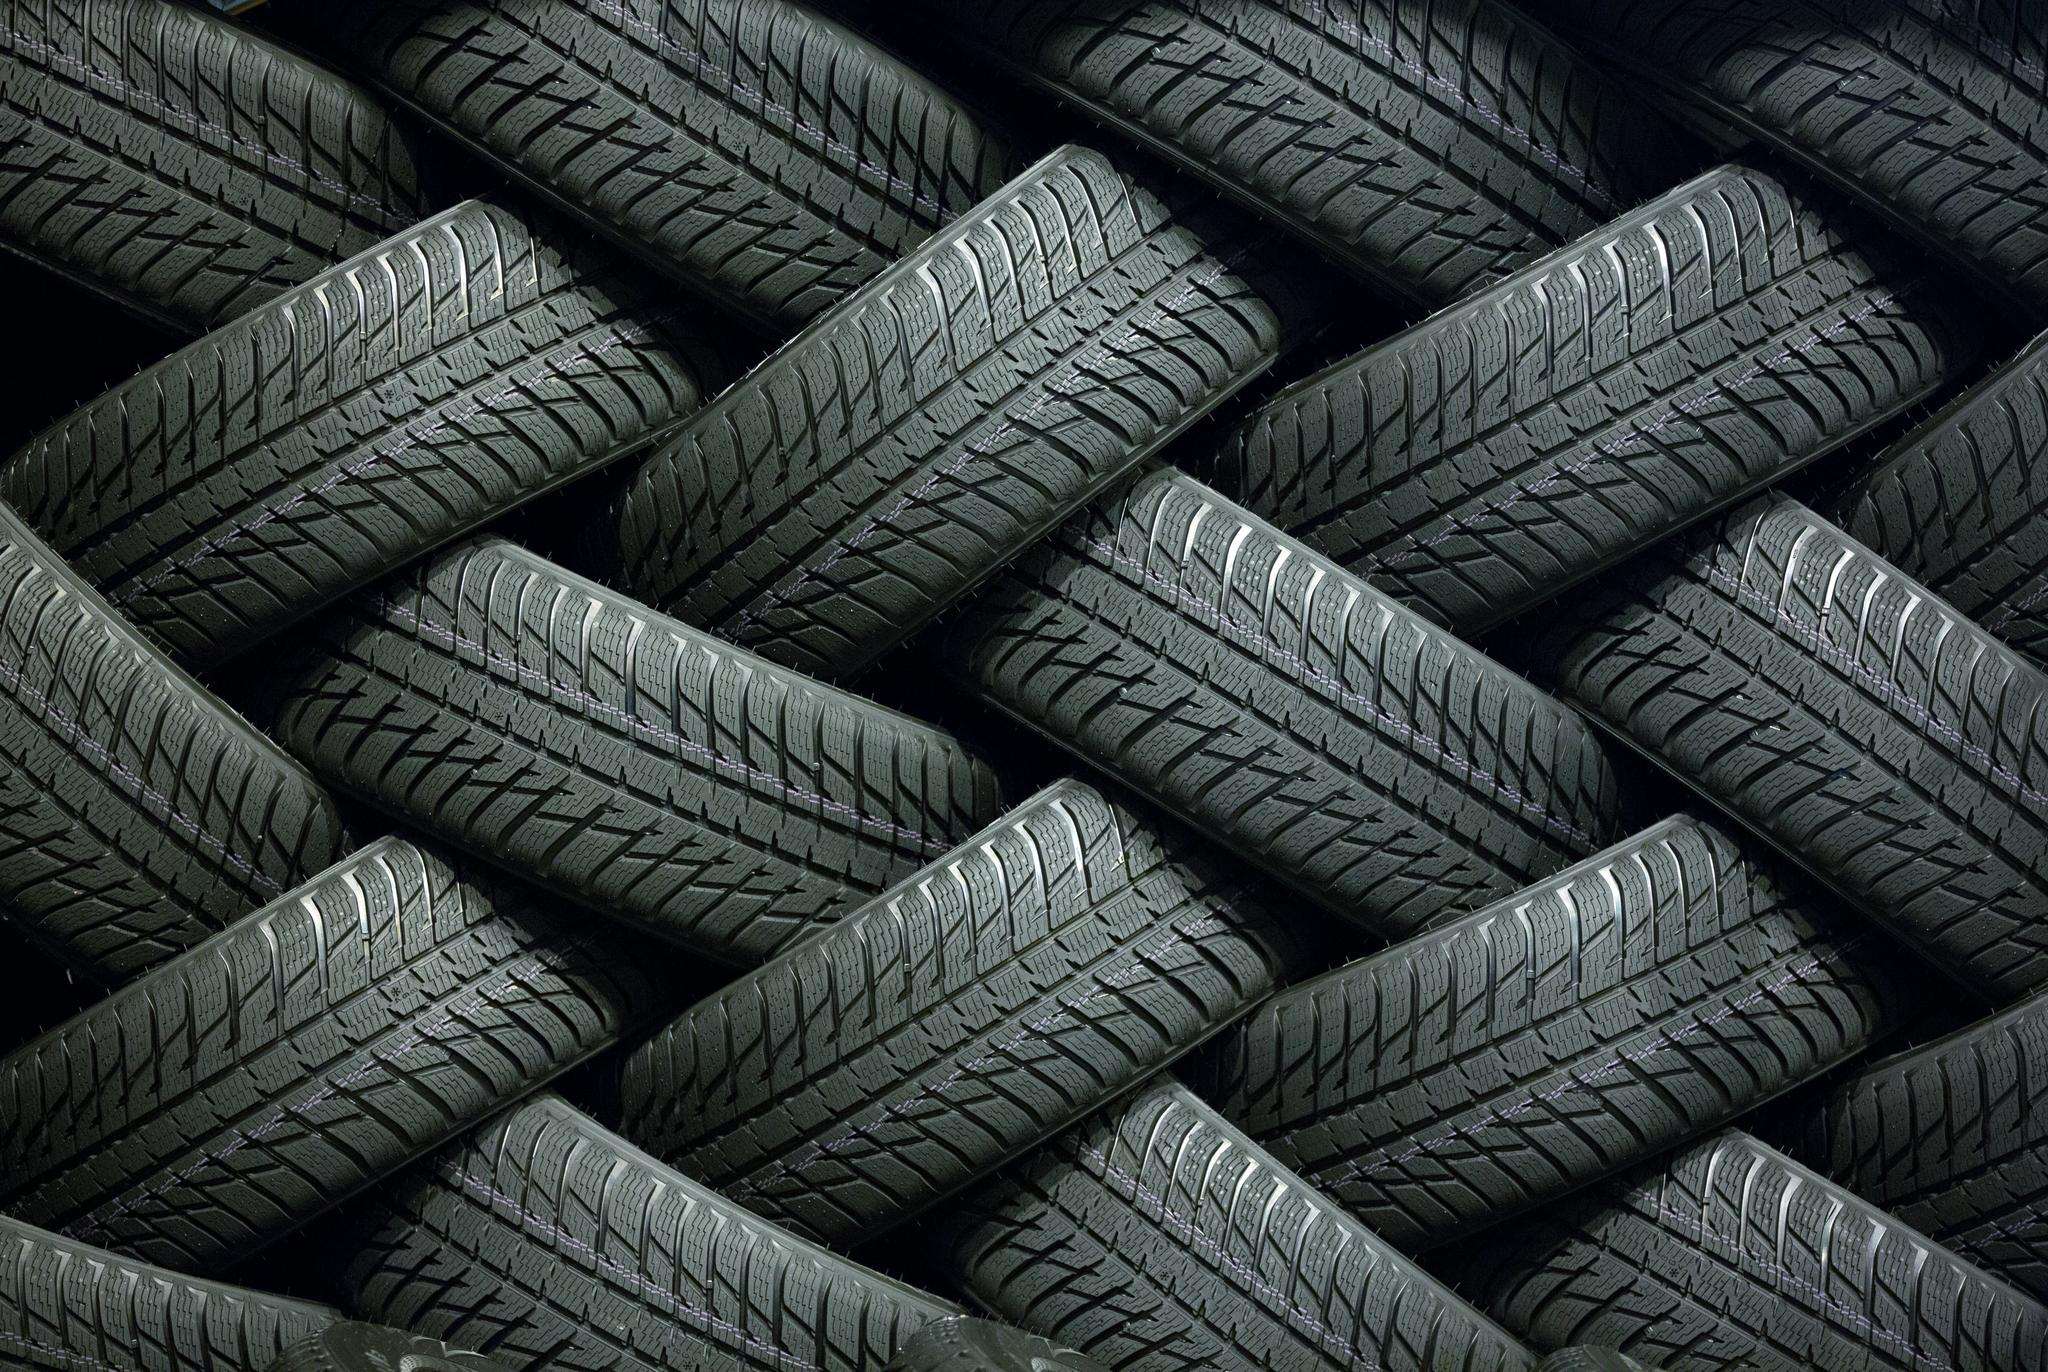 A new eco-friendly rubber could make the tire industry cleaner and less costly.